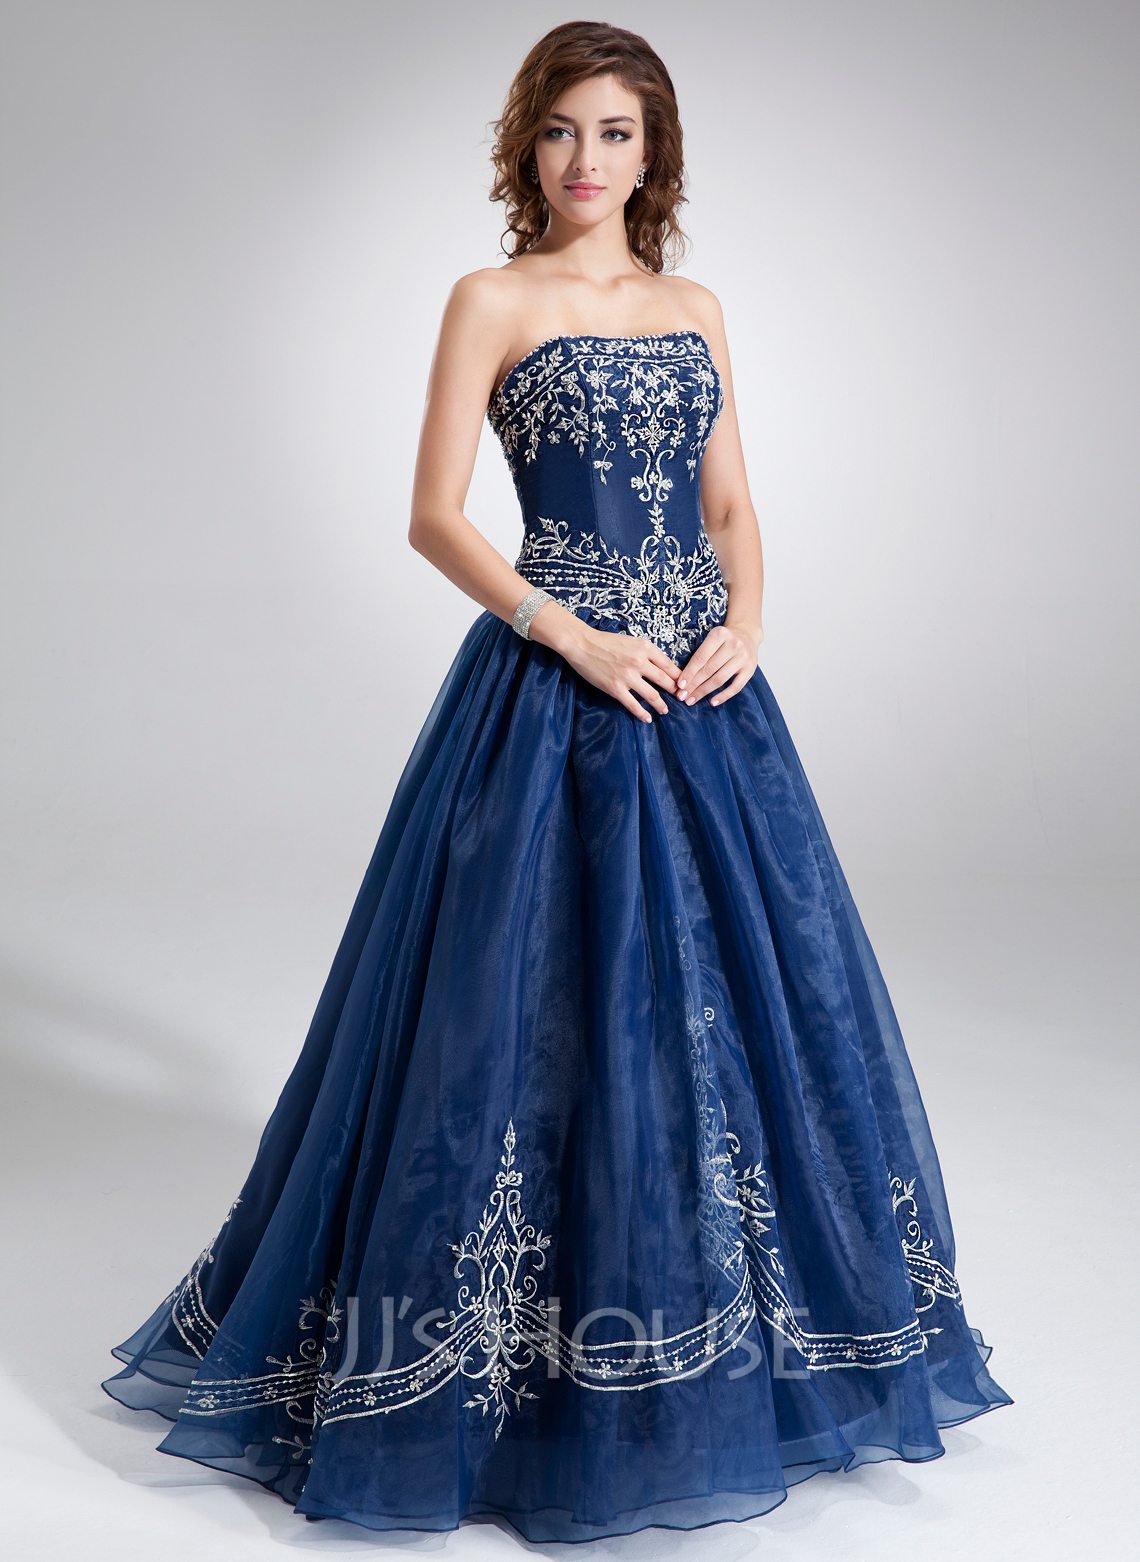 adead6664c1 Ball-Gown Sweetheart Floor-Length Organza Quinceanera Dress With Embroidered  Beading. Loading zoom